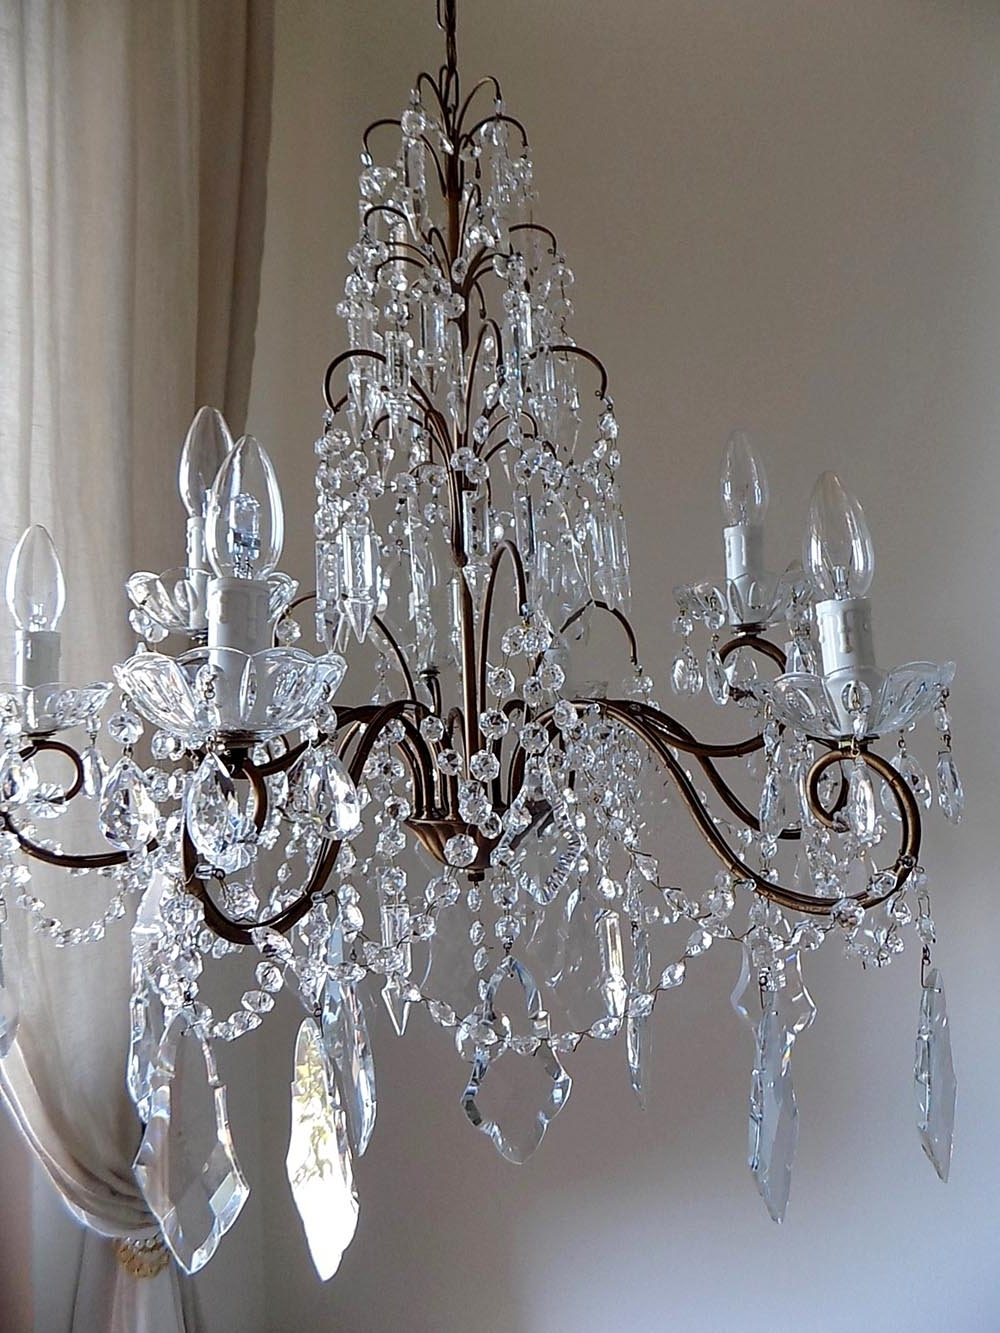 Italian Crystal Chandeliers Antique – Chandelier Designs Within Most Recent Vintage Italian Chandeliers (Gallery 13 of 15)